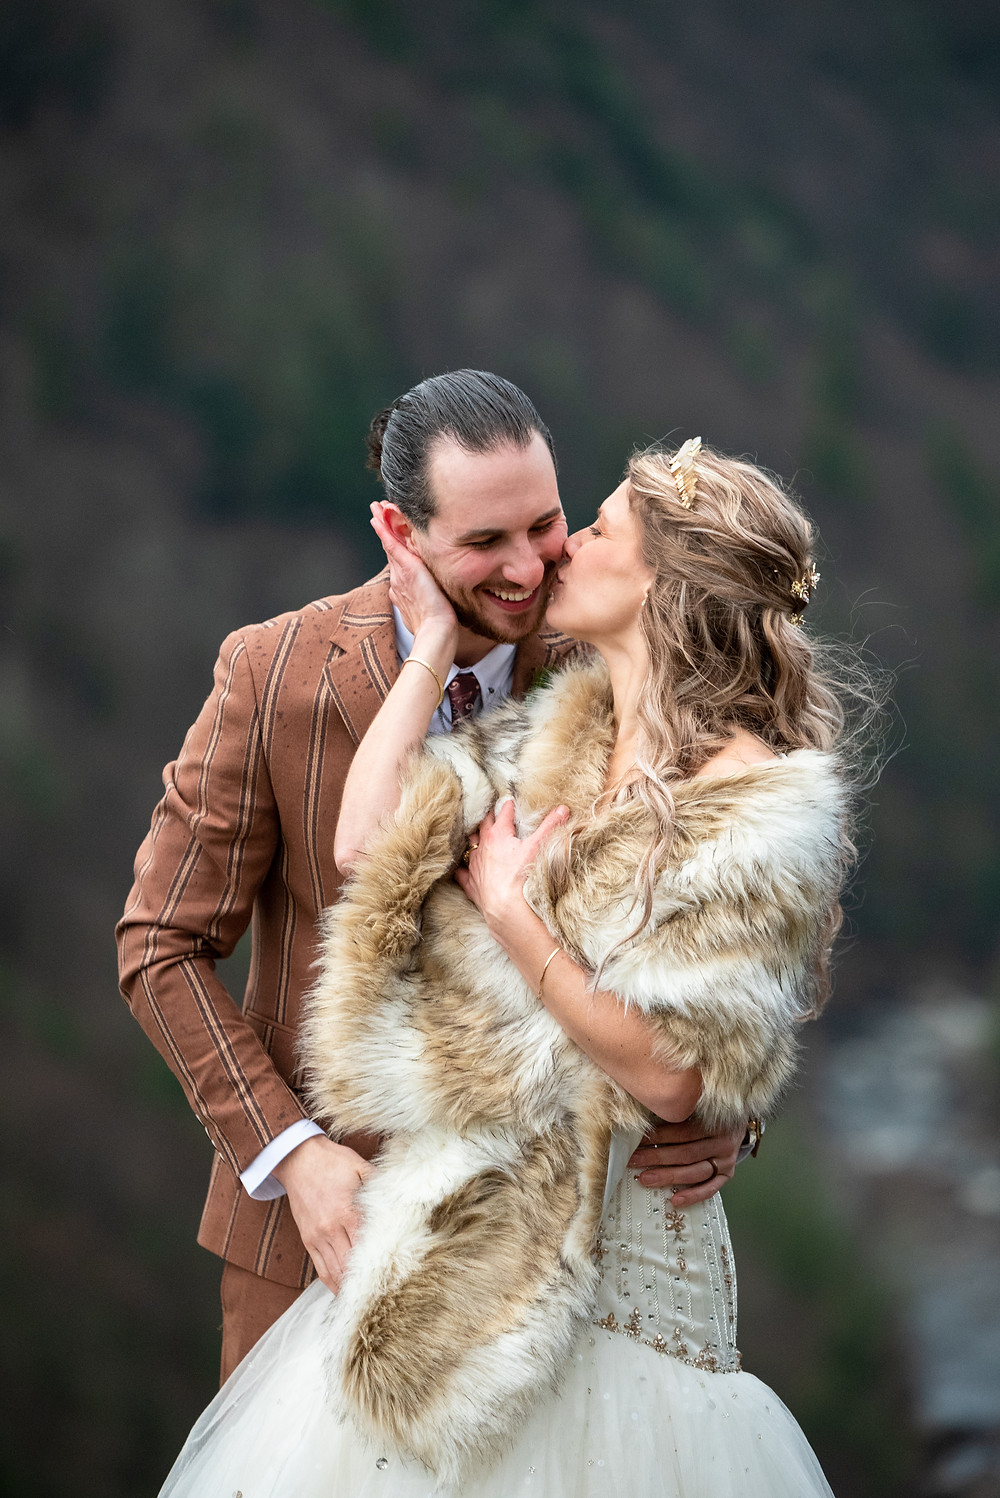 Blackwater falls elopement in West Virginia